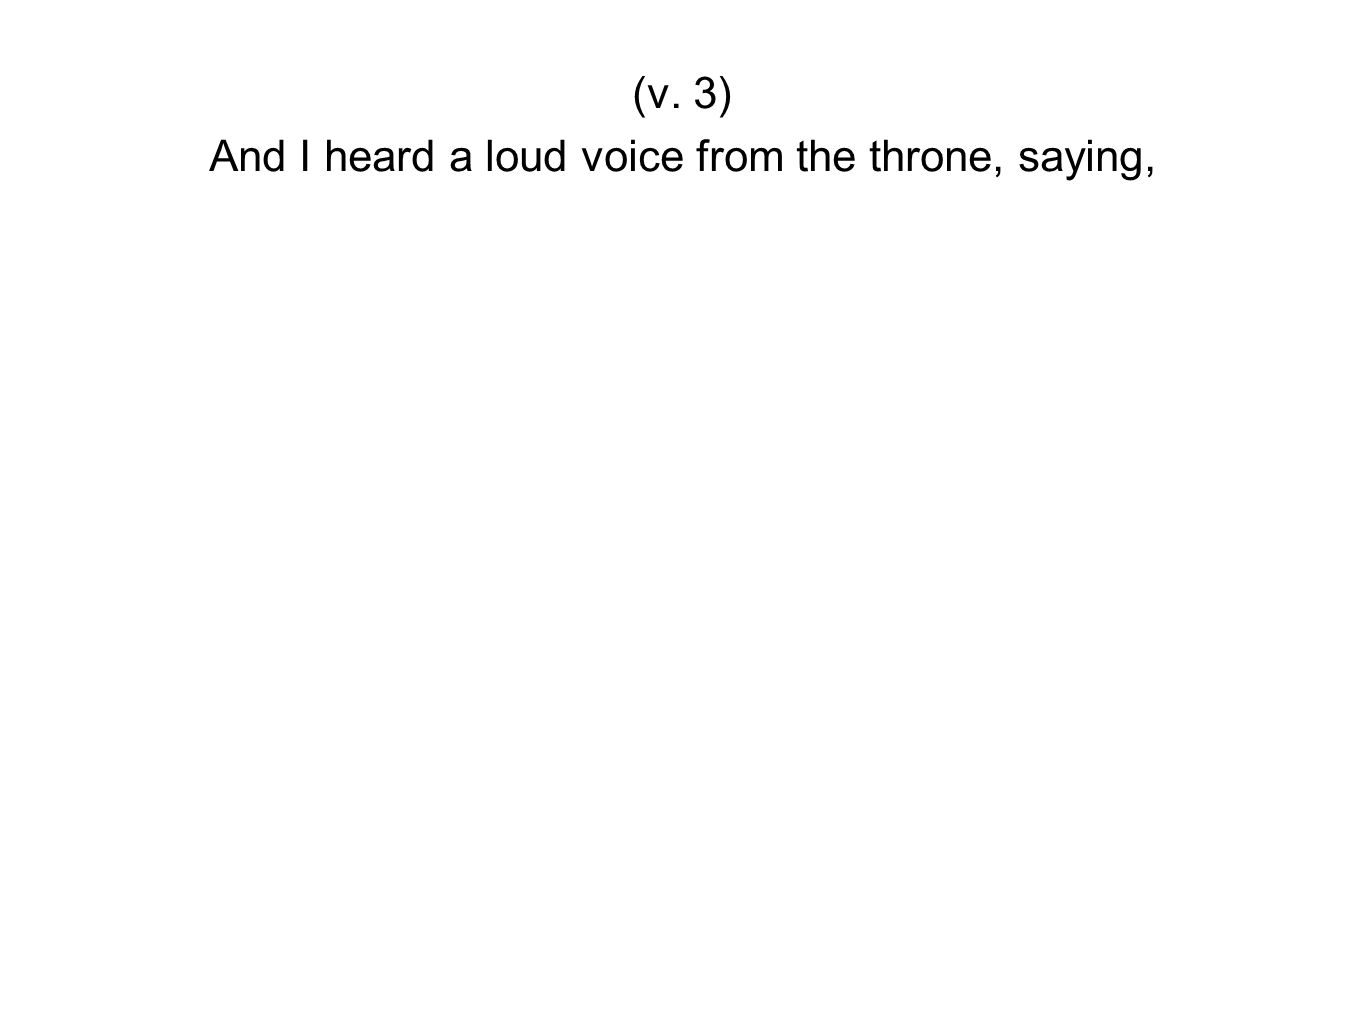 And I heard a loud voice from the throne, saying,